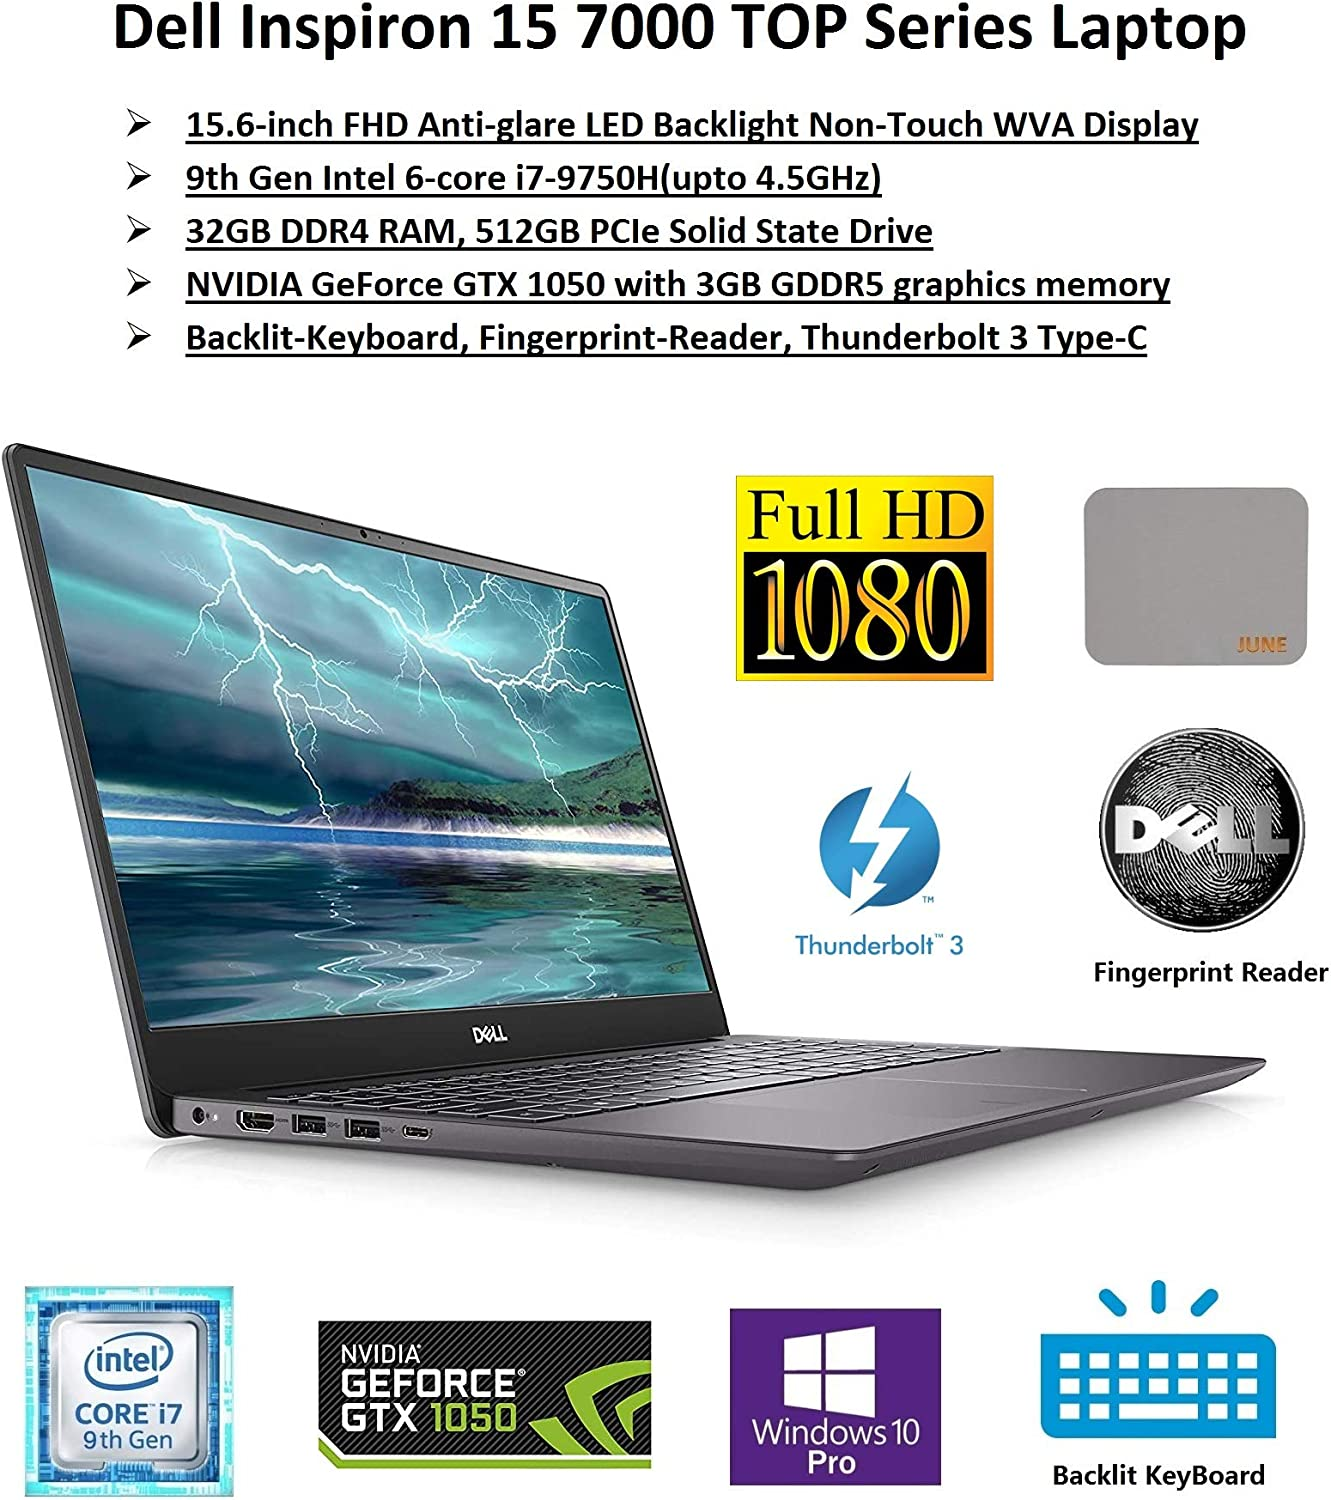 "2020 Newest Dell Inspiron Flagship 15 7000 Premium Biz&Gaming Laptop: 15.6"" FHD Display, Intel 6-core i7 CPU, 32GB RAM, 512GB SSD, NVIDIA GTX1050, Backlit-KB, FP-Reader, ThurderBolt, Win10Pro, JuneMP"